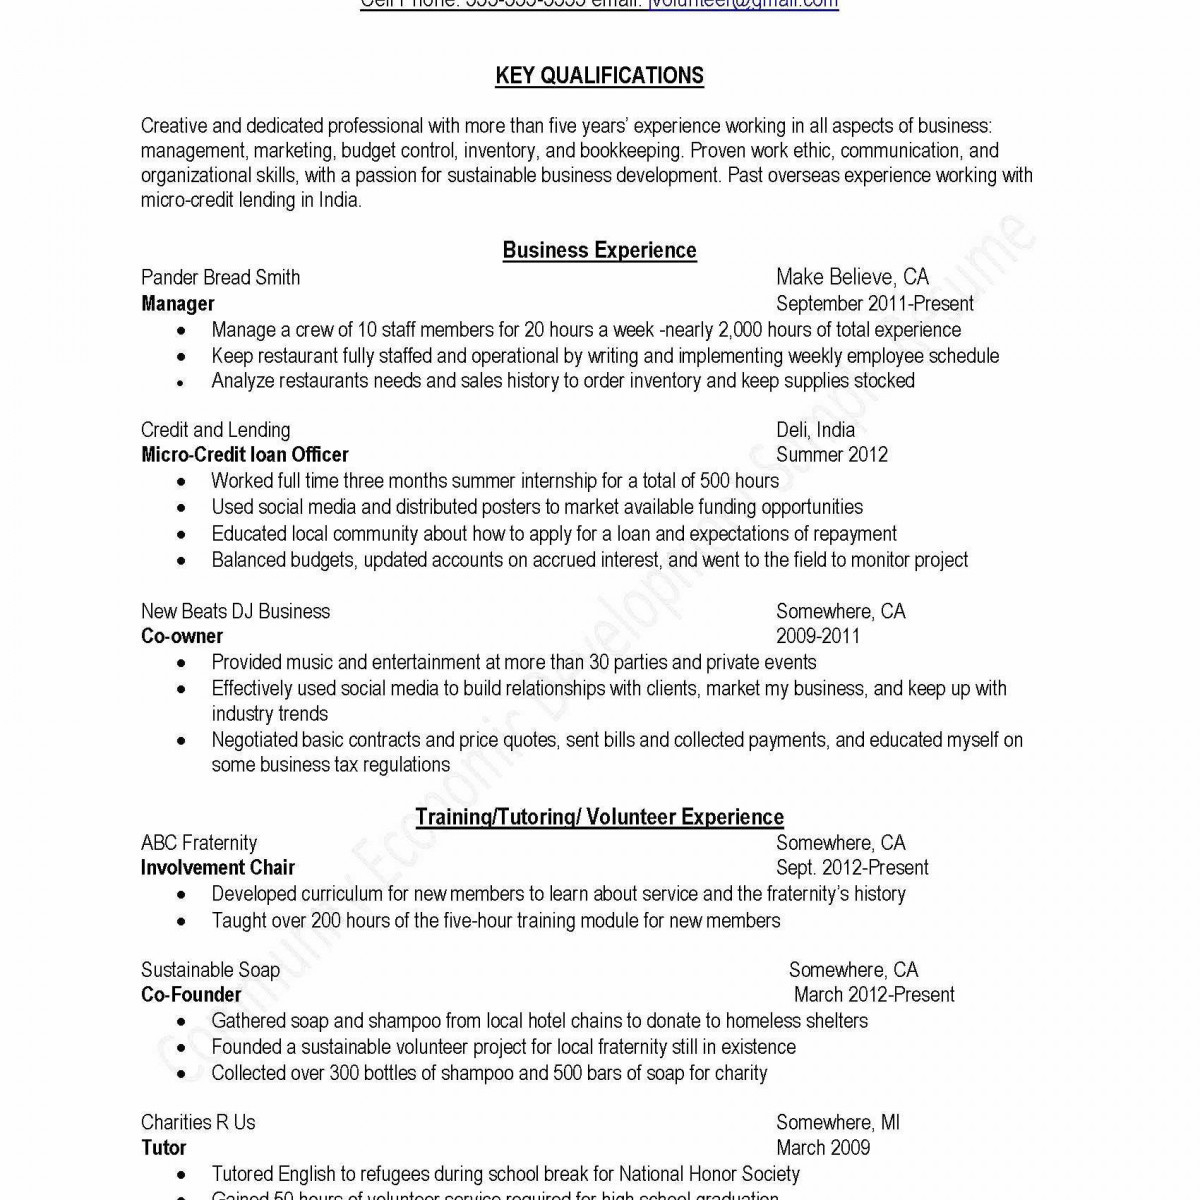 Best High School Resume - High School Resume Examples for College Amazing College Application